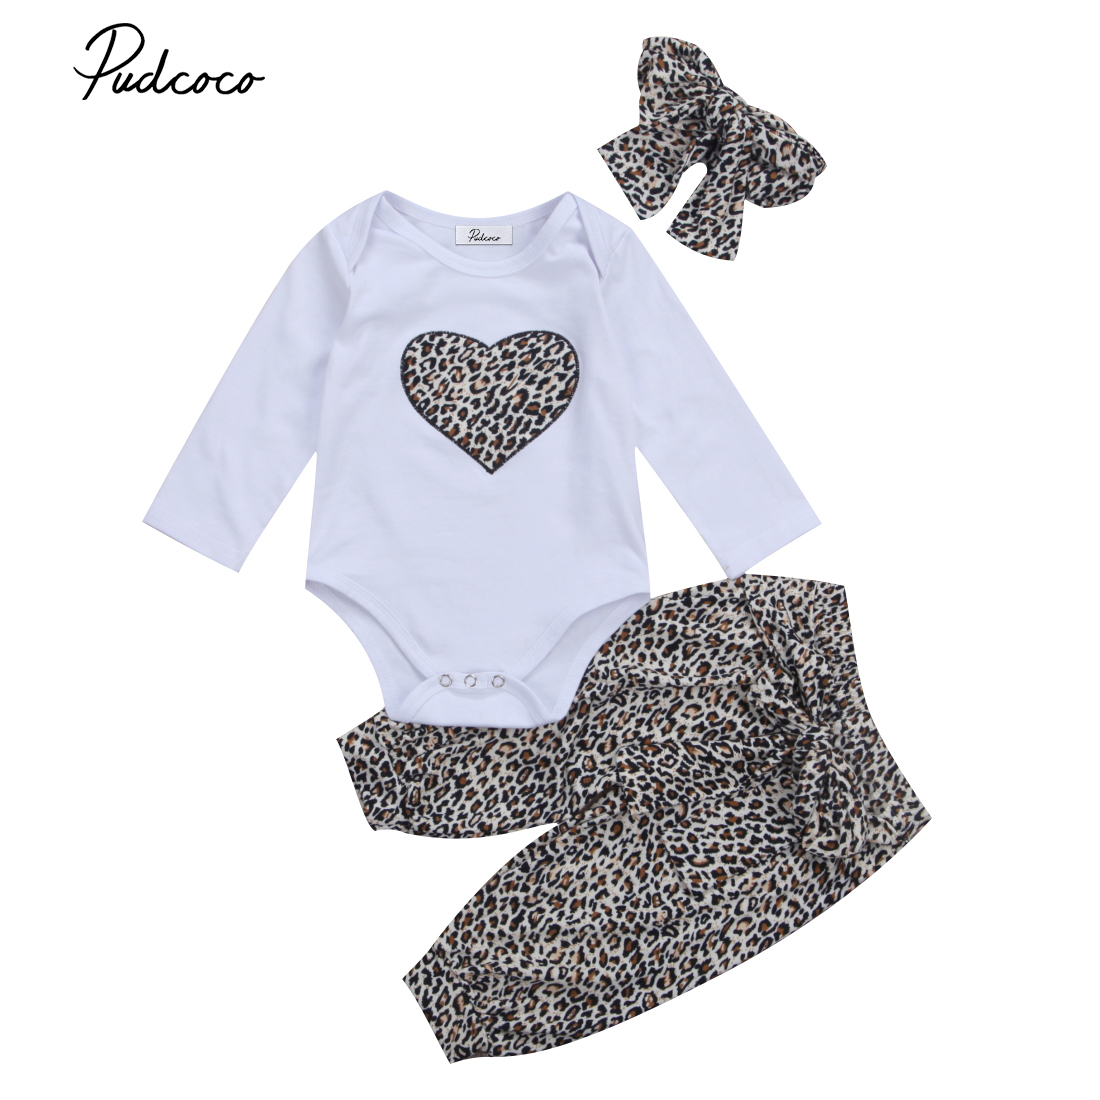 New Lovely Newborn Toddler Infant Baby Girl Romper +Long Floral Pants+Headband 3Pcs Outfit Leopard Heart Clothes Sets